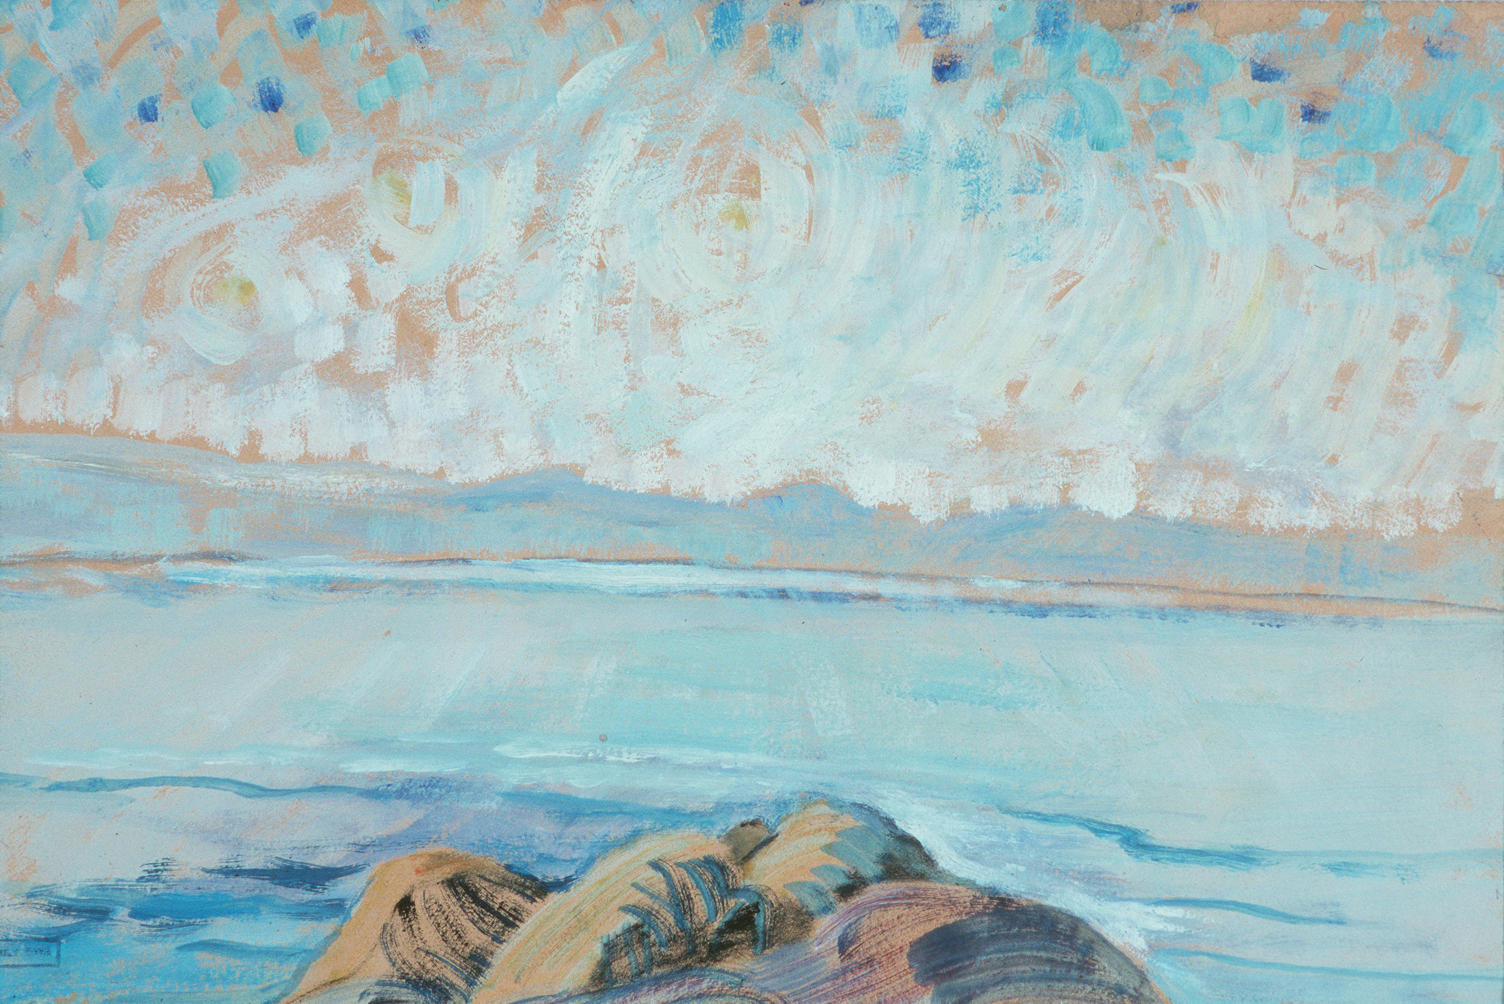 Emily Carr, Untitled (Seascape), 1935, oil on paper mounted on board, 26.5 x 40.5 cm,  The Art Gallery of Greater Victoria